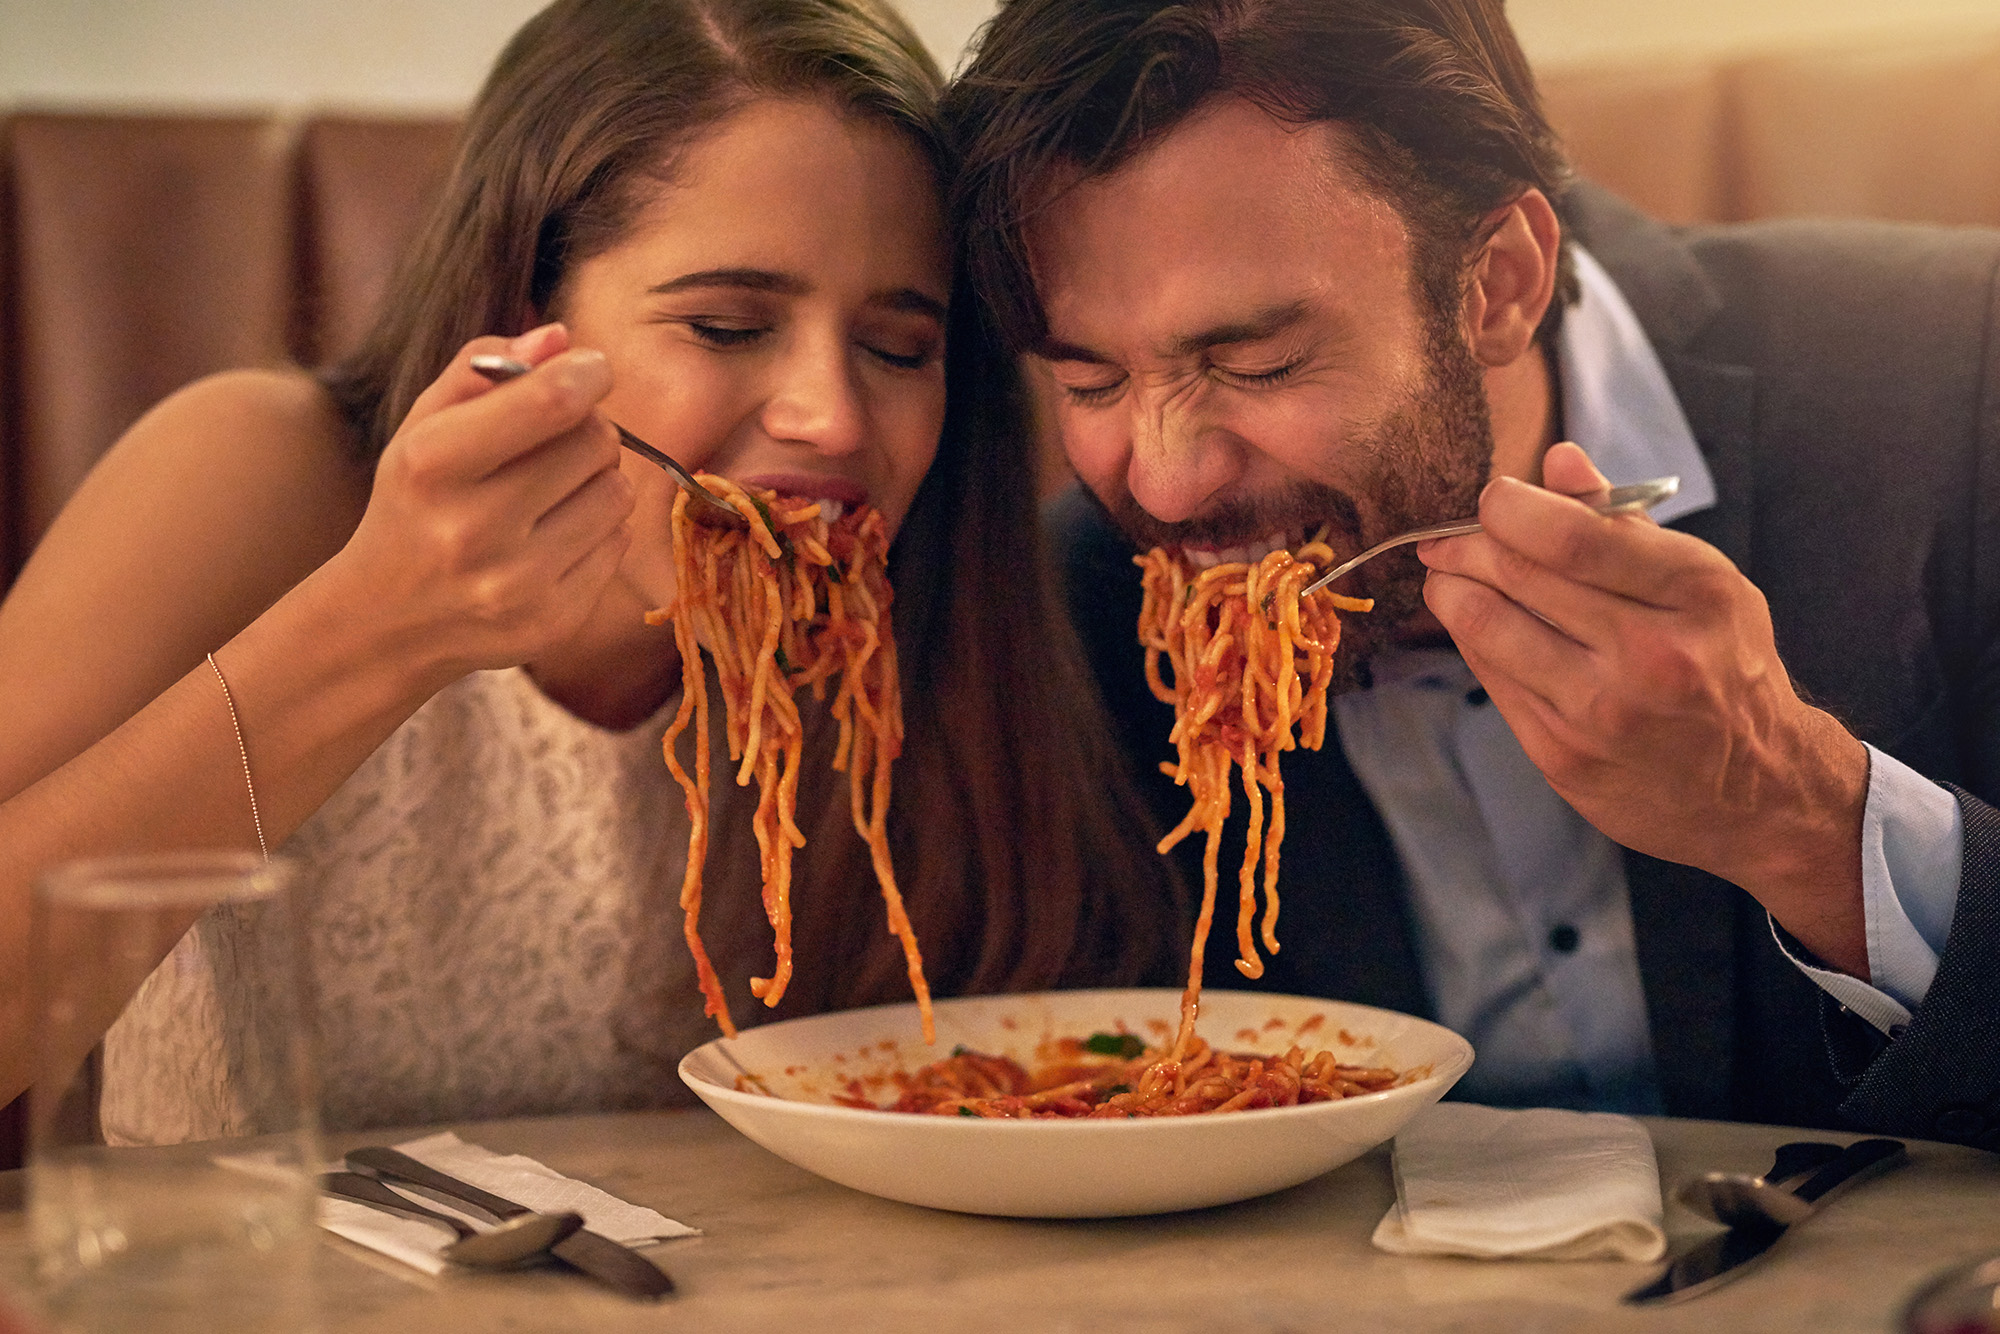 Let the truth set you free: Eating pasta won